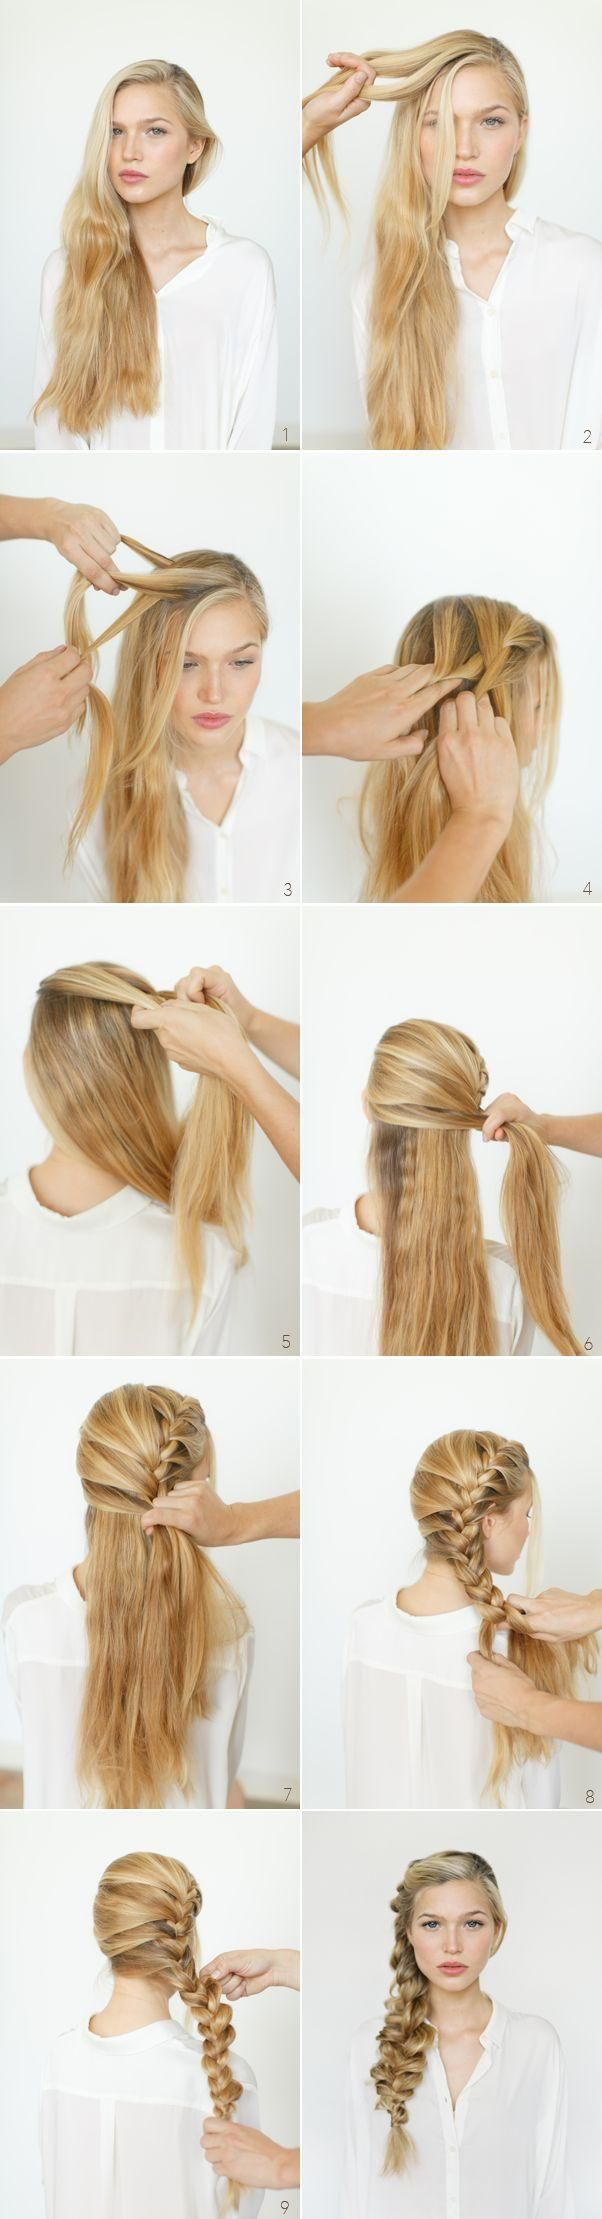 Step by Step Hairstyles For Long Hair                                                                                                                                                                                 More